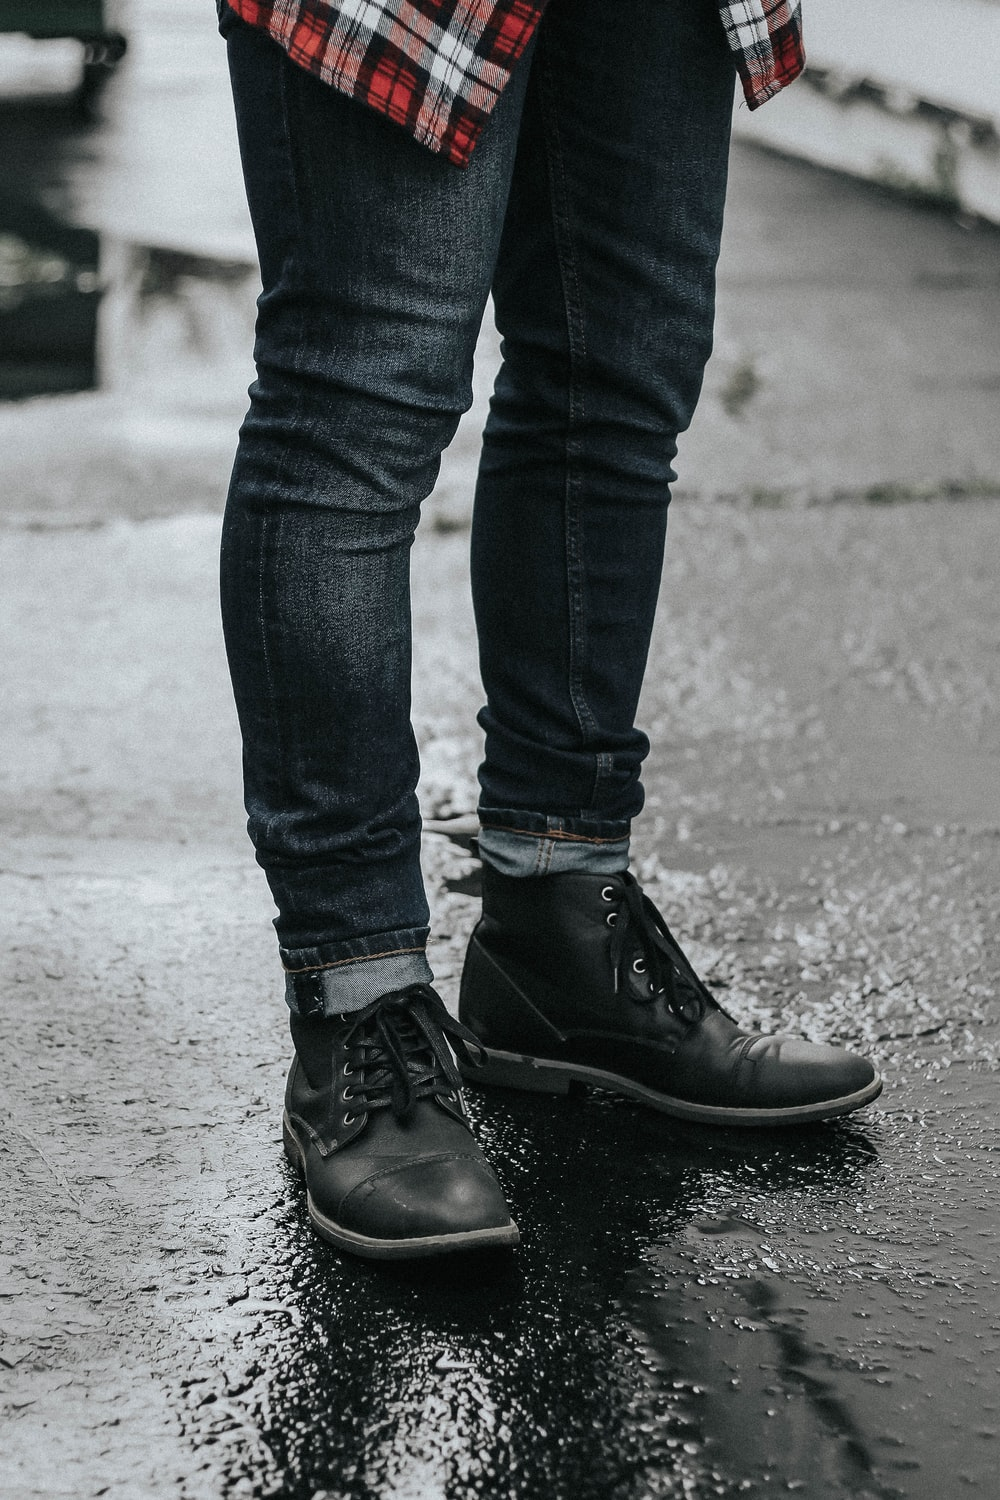 person wearing black denim jeans and pair of black leather boots